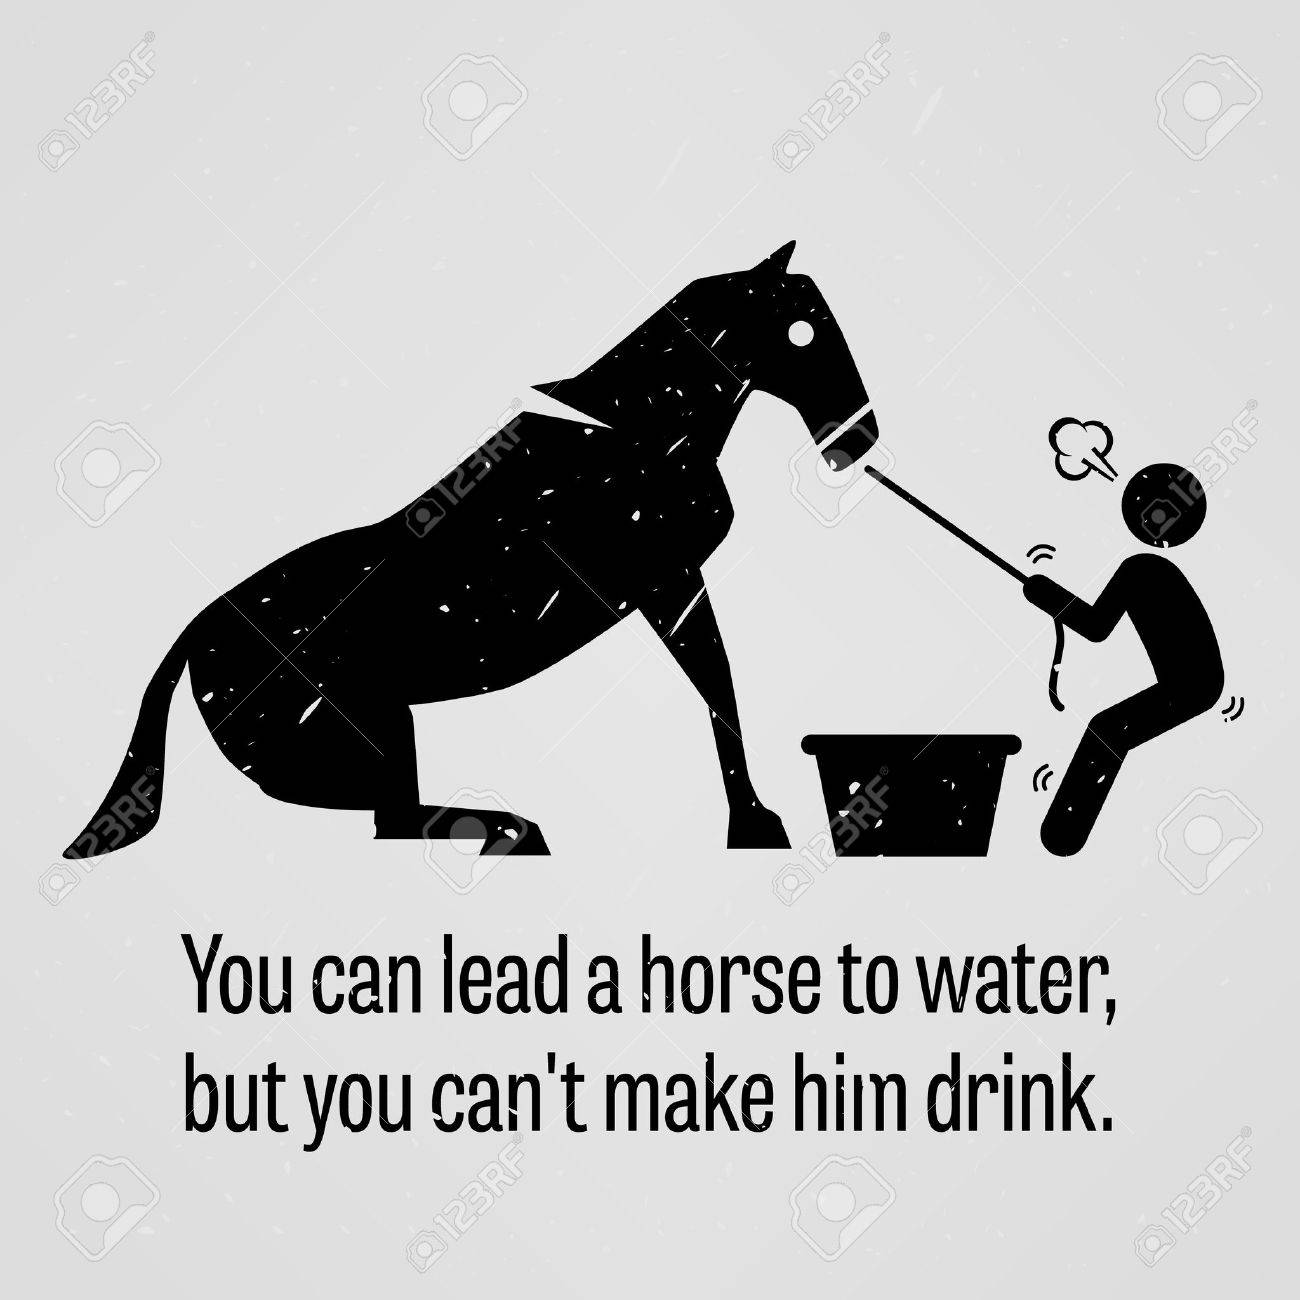 Water Horse: You Can Lead A Horse To Water But You Cannot Make Him Drink